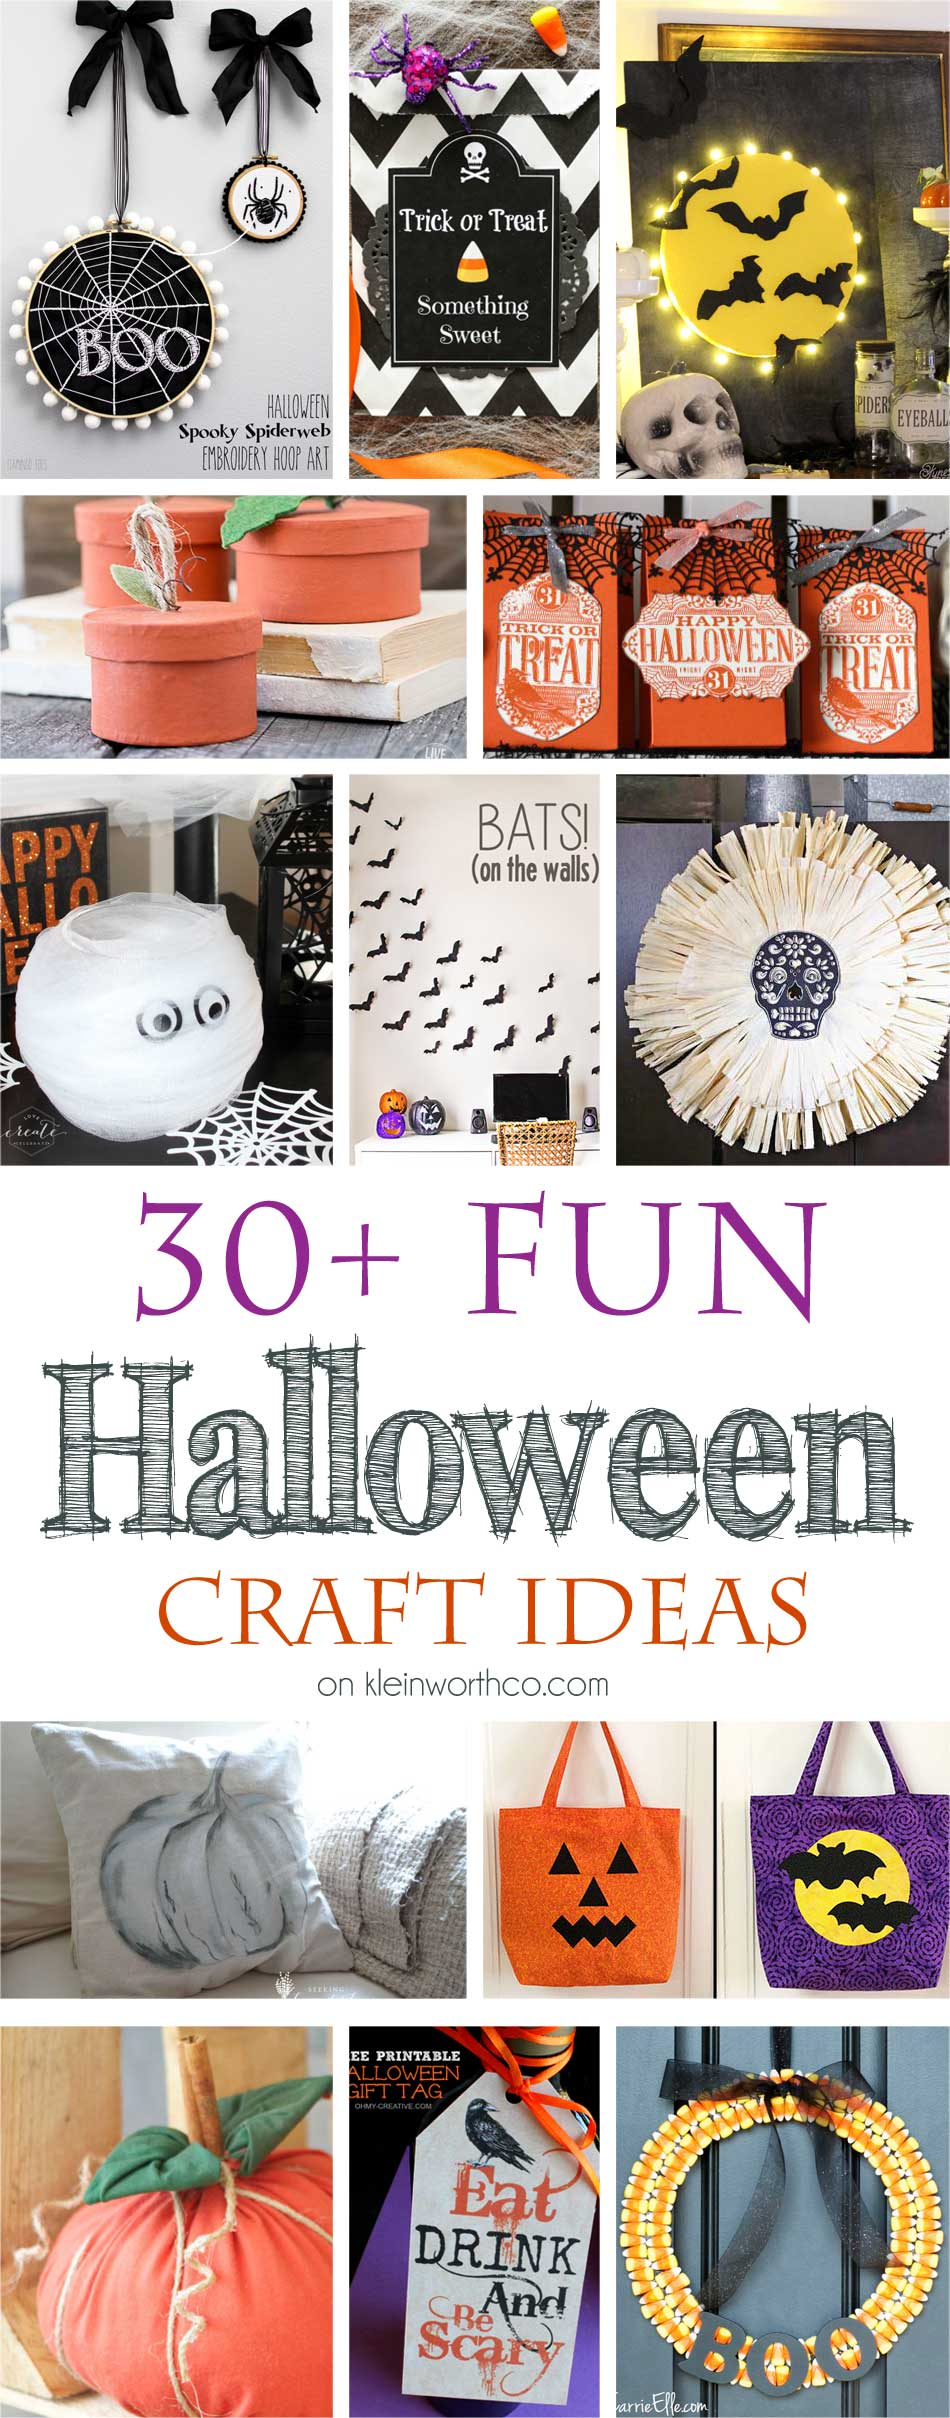 photo regarding Halloween Craft Printable identify 30+ Exciting Halloween Craft Guidelines - Kleinworth Co